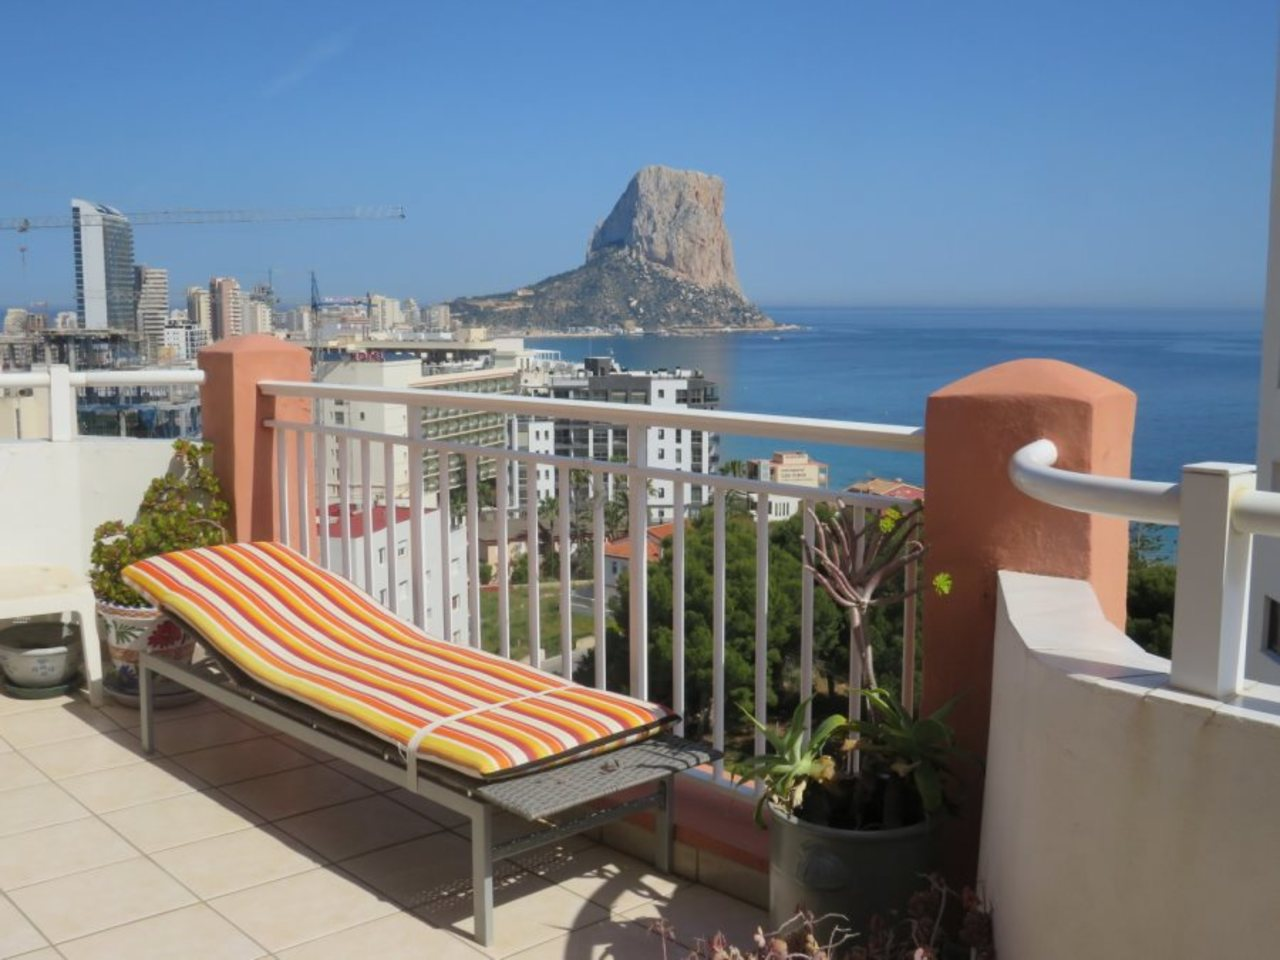 ES194-14142, For Sale-Calpe-ES194-14142